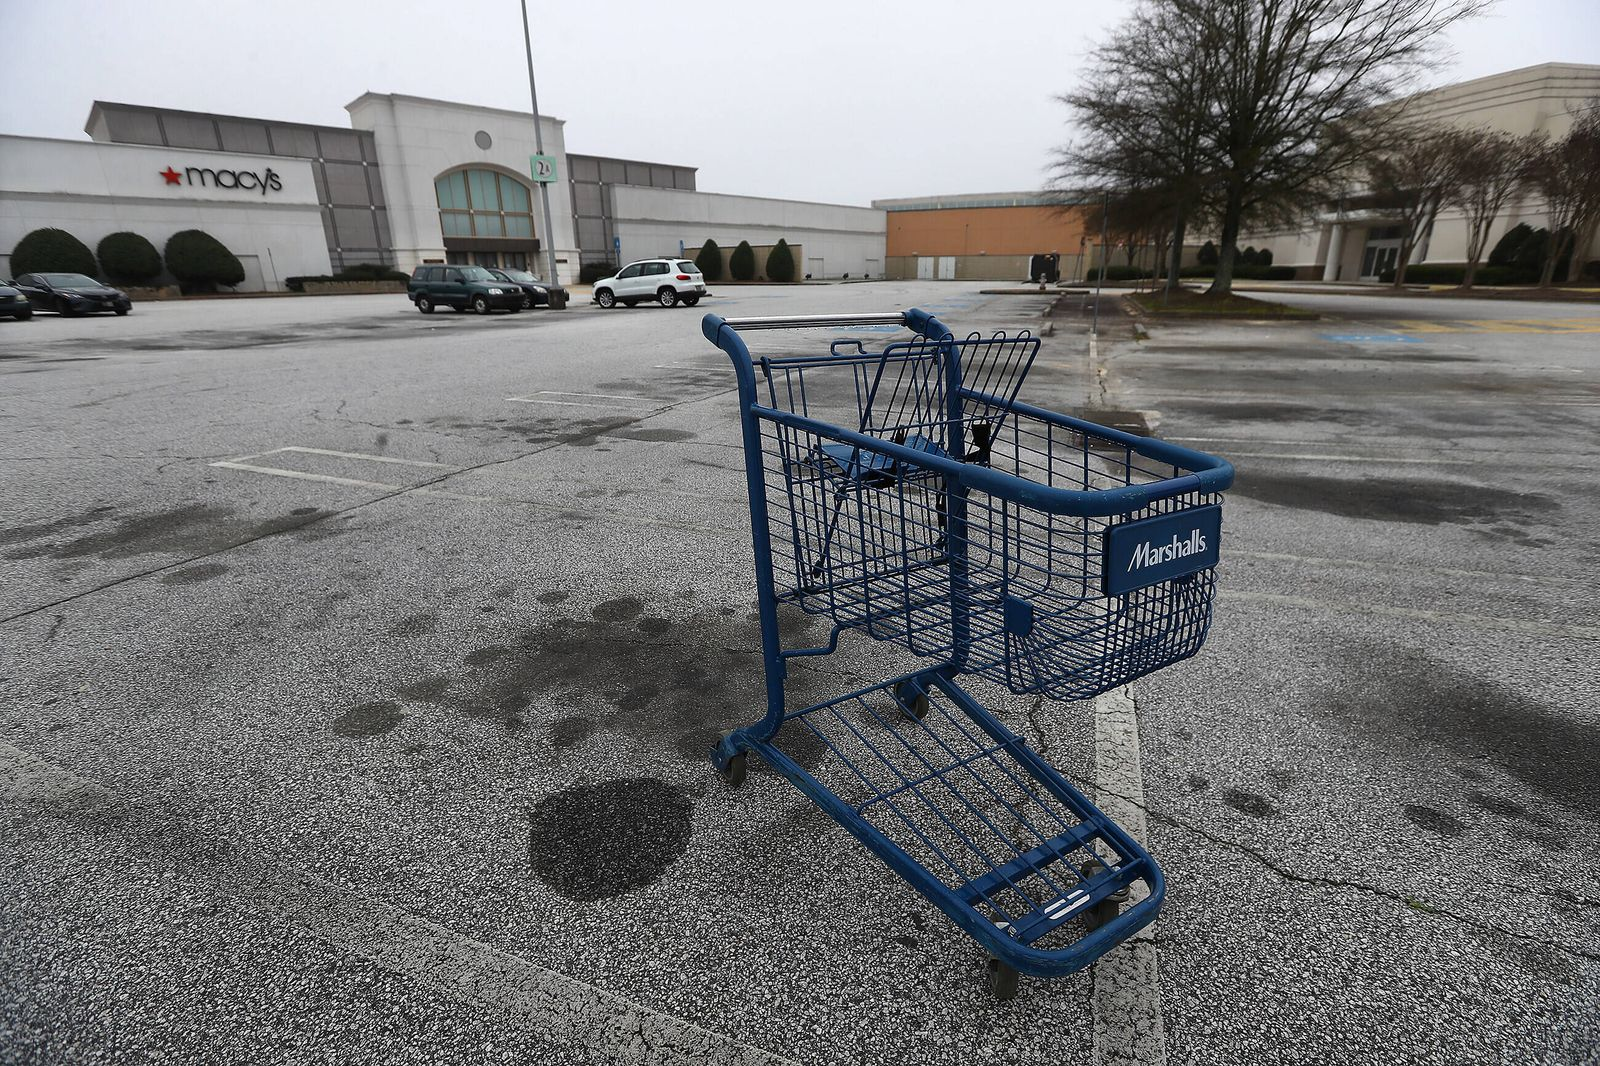 March 17, 2020, Marietta, GA, USA: A few vehicles and an abandoned shopping cart are seen outside one of the entrances t